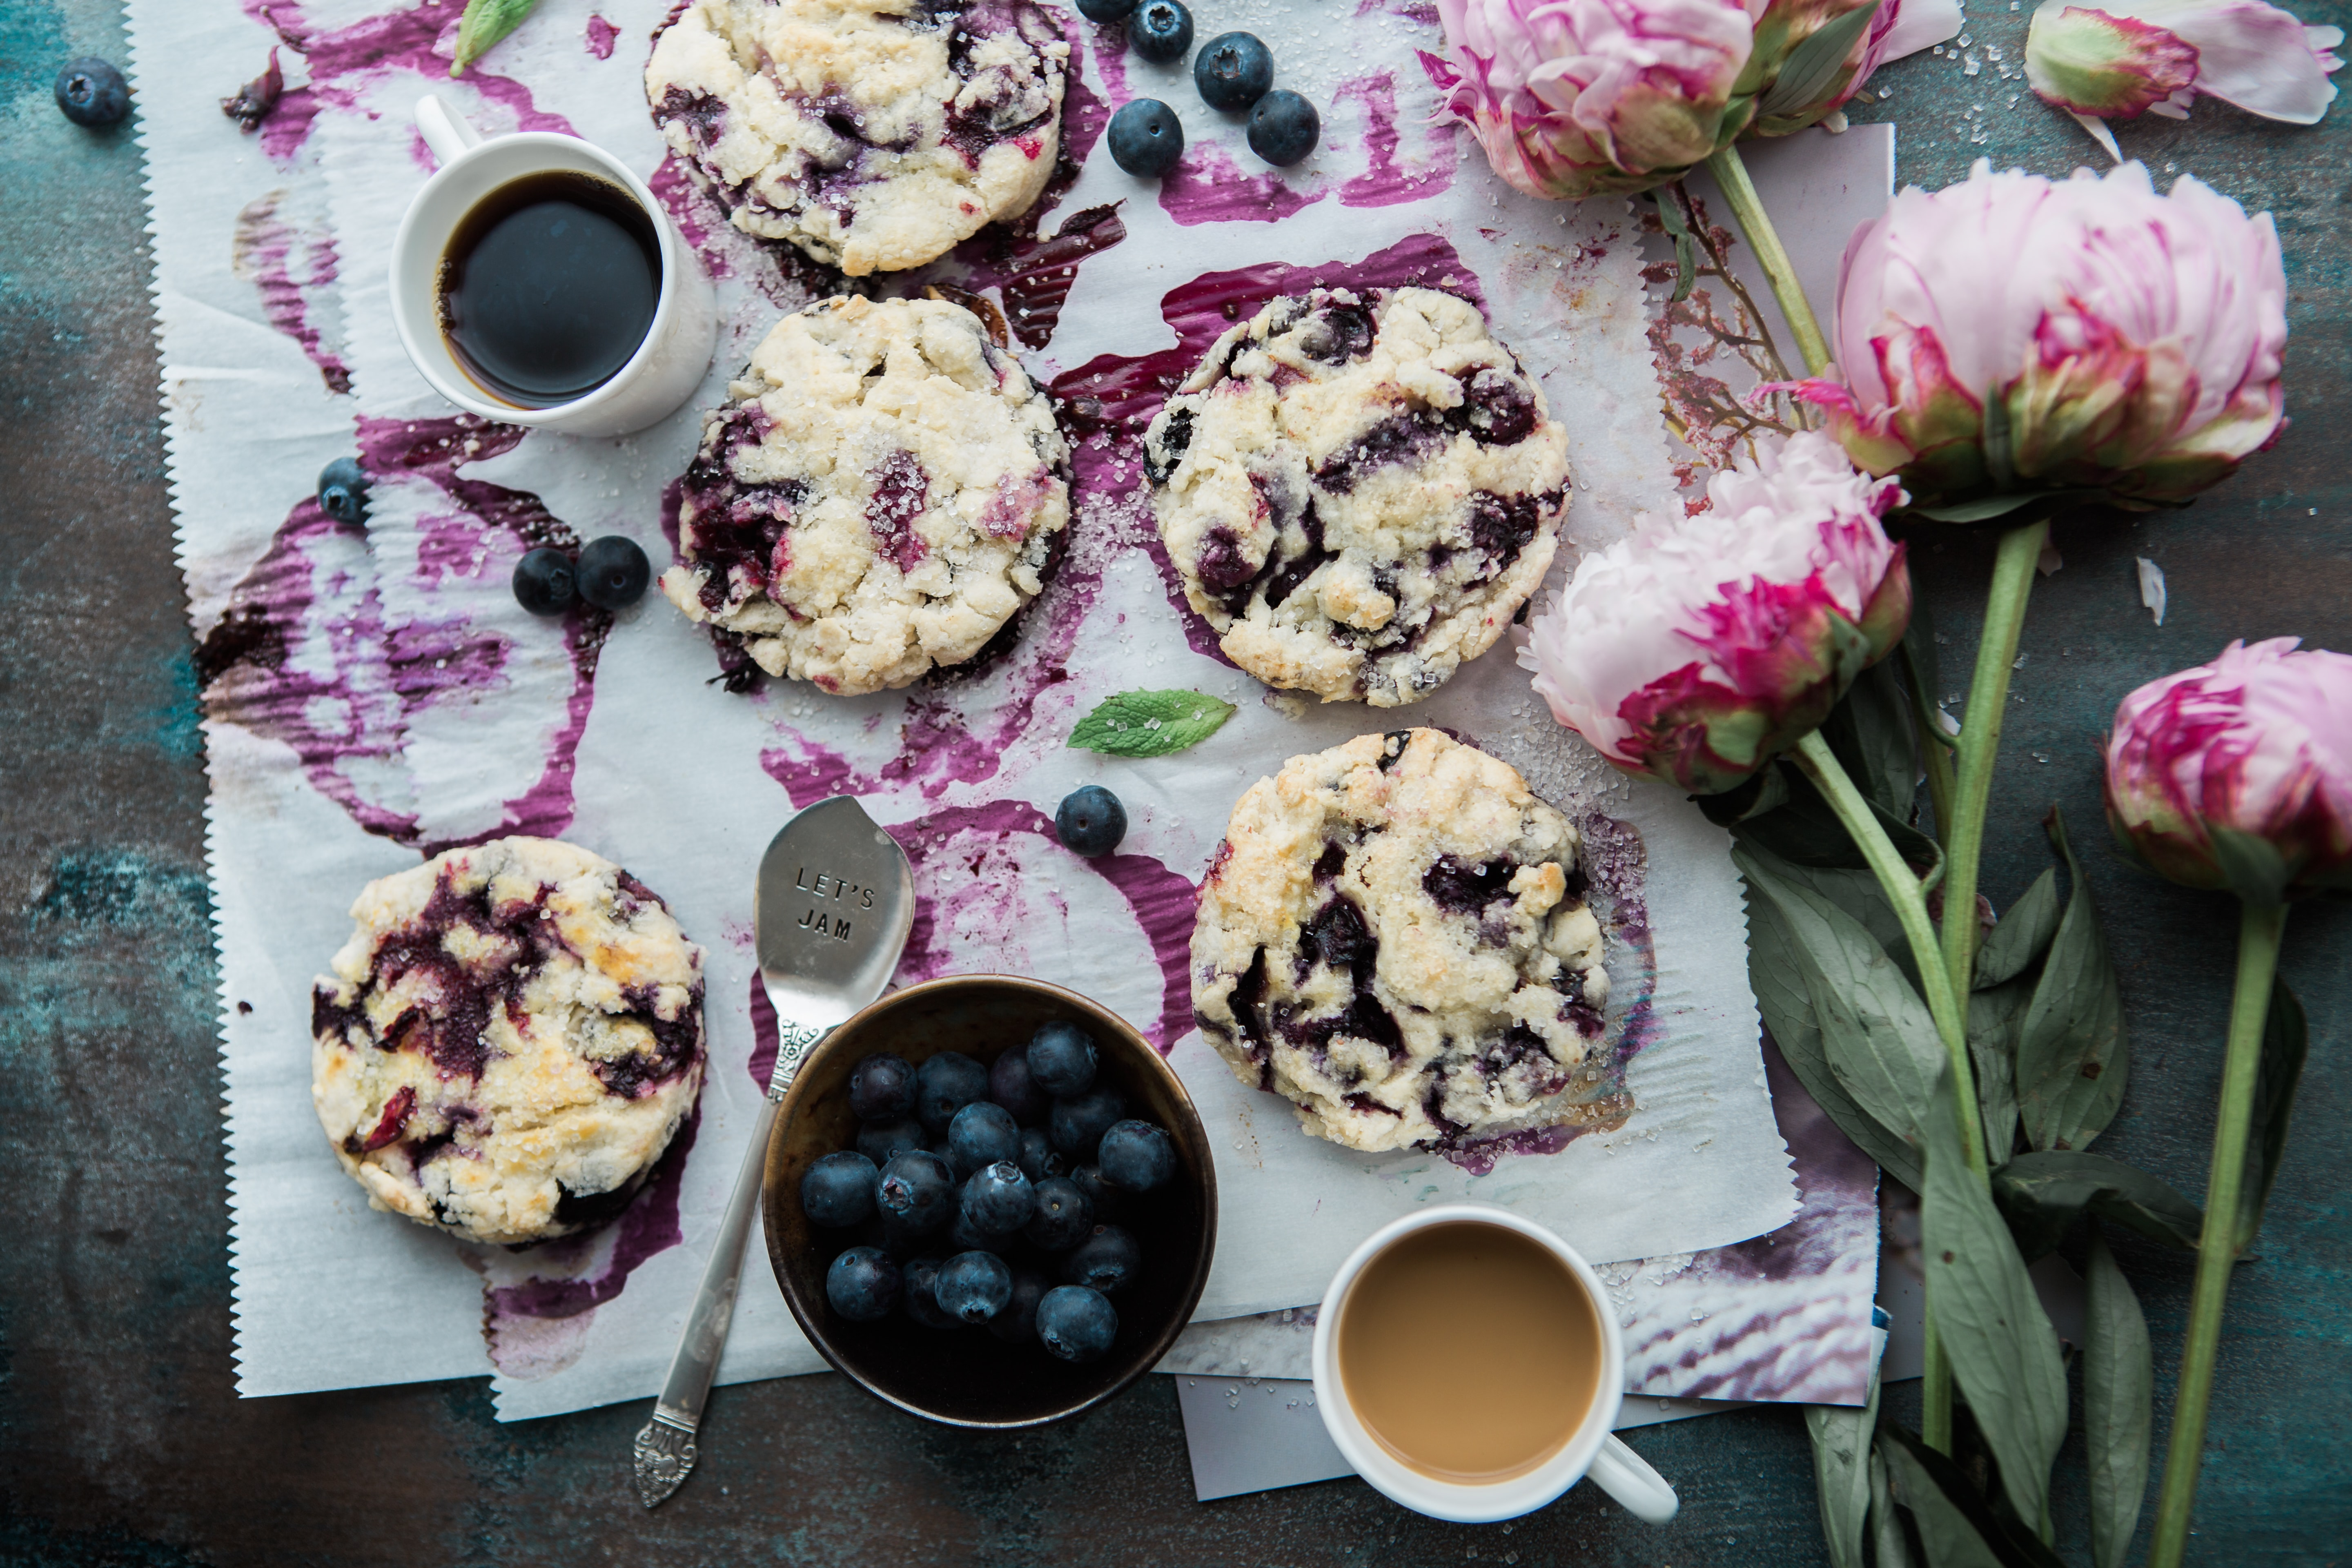 An overhead shot of blueberry scones with coffee and pink flowers laid out on the side